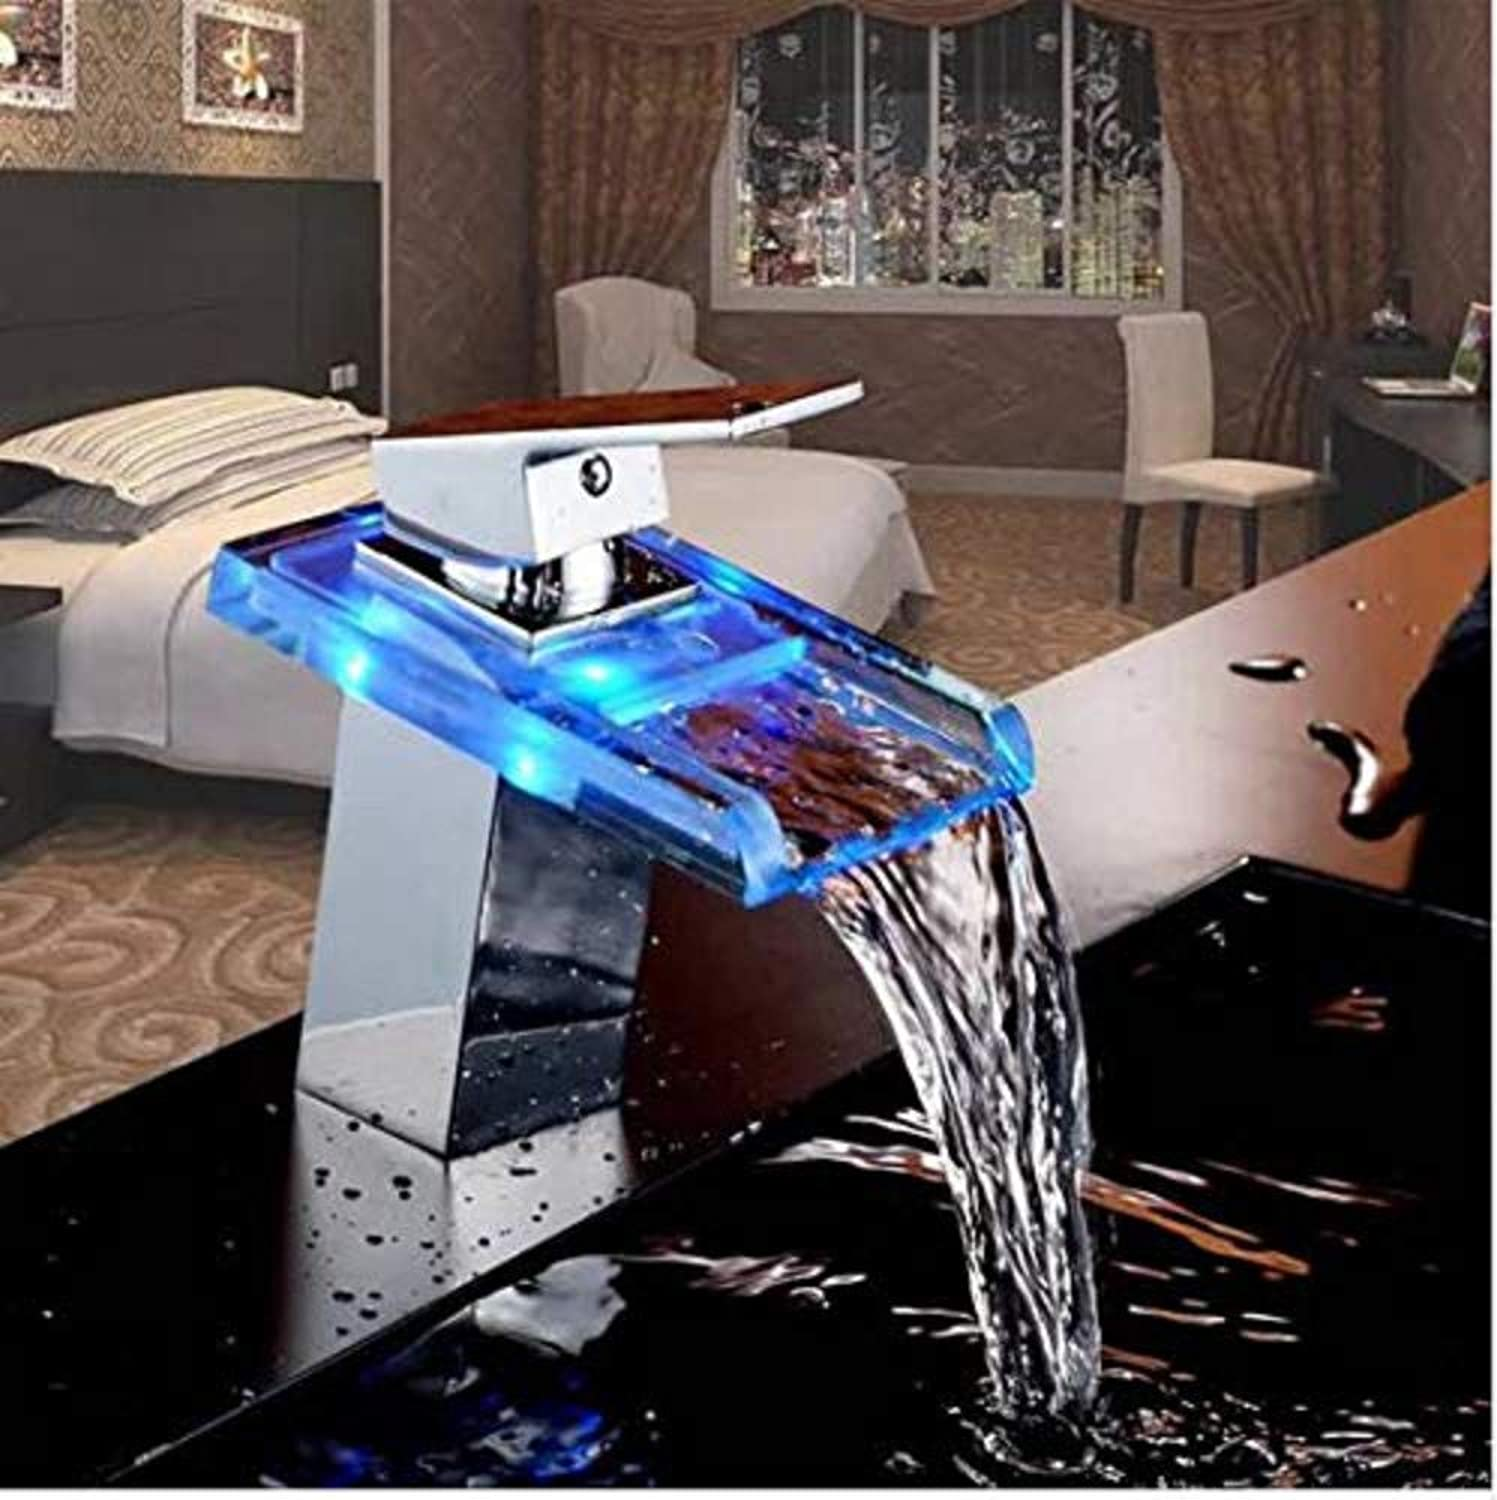 Hot and Cold Chrome-Plated Brass Kitchen Bathroom Waterfall Led Faucet Glass Waterfall Brass Basin Faucet Bathroom Mixer Tap Deck Mounted